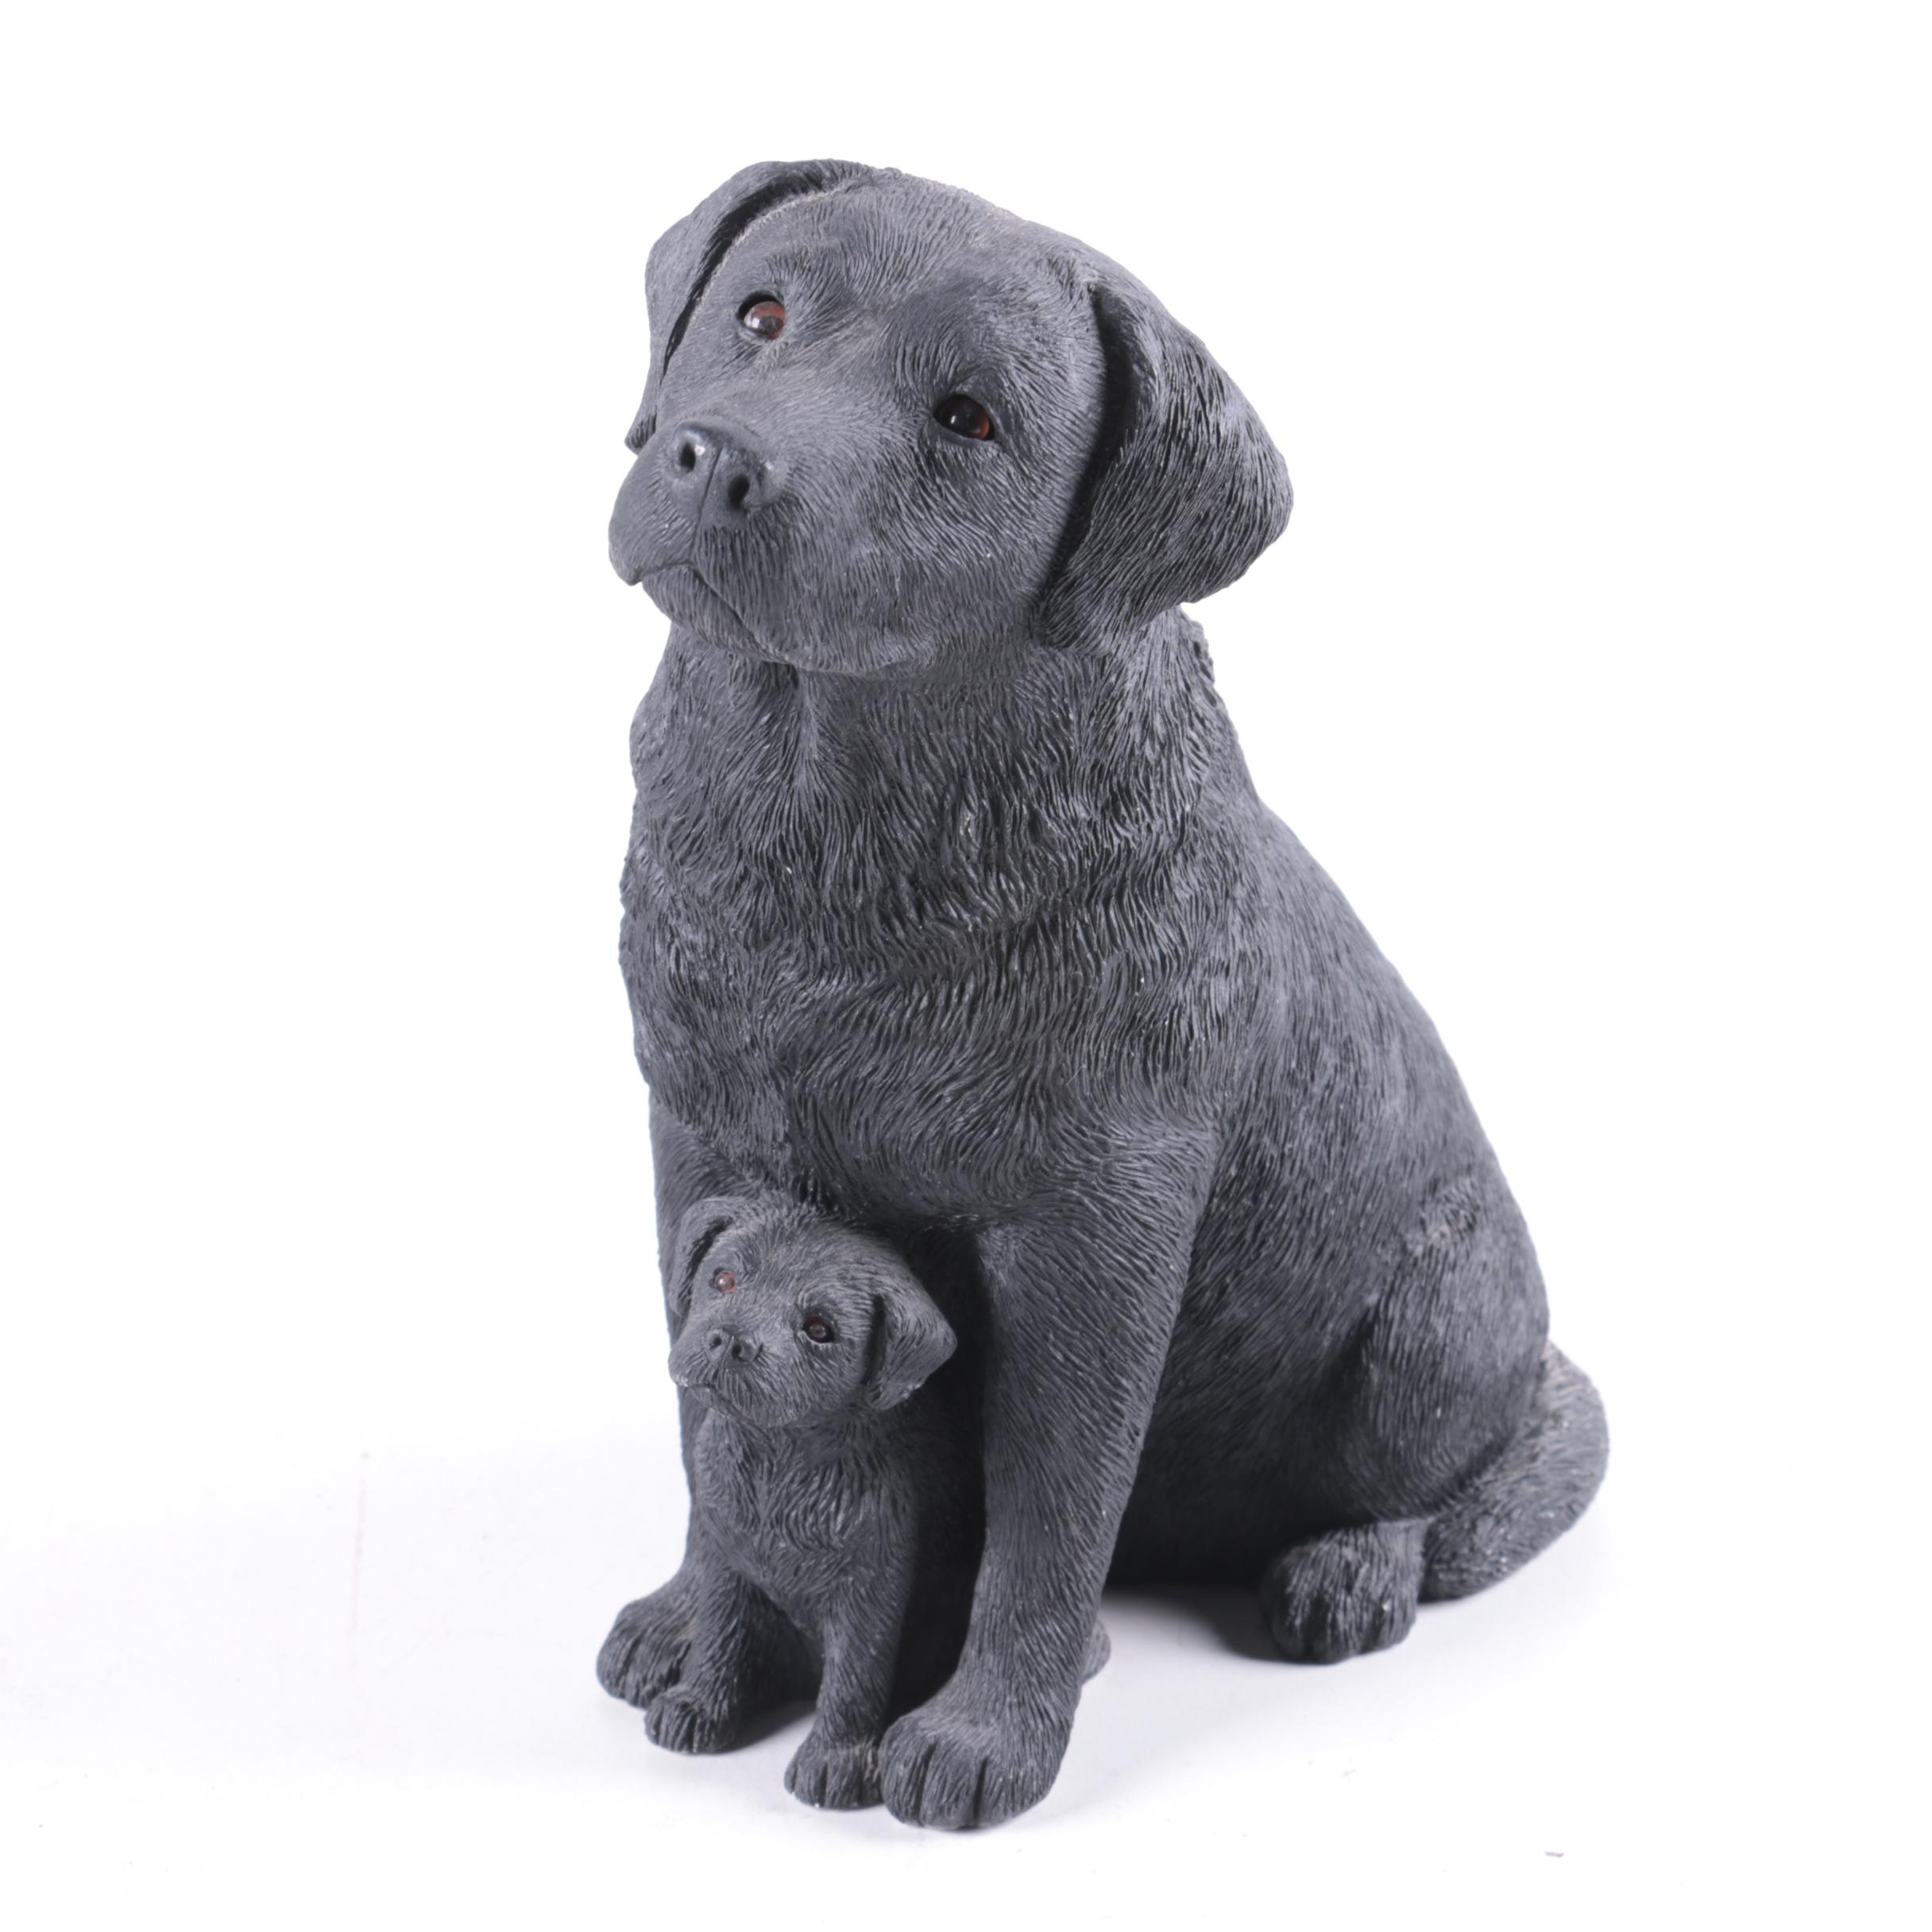 Black Labrador Retriever Dog and Puppy Resin Figurine